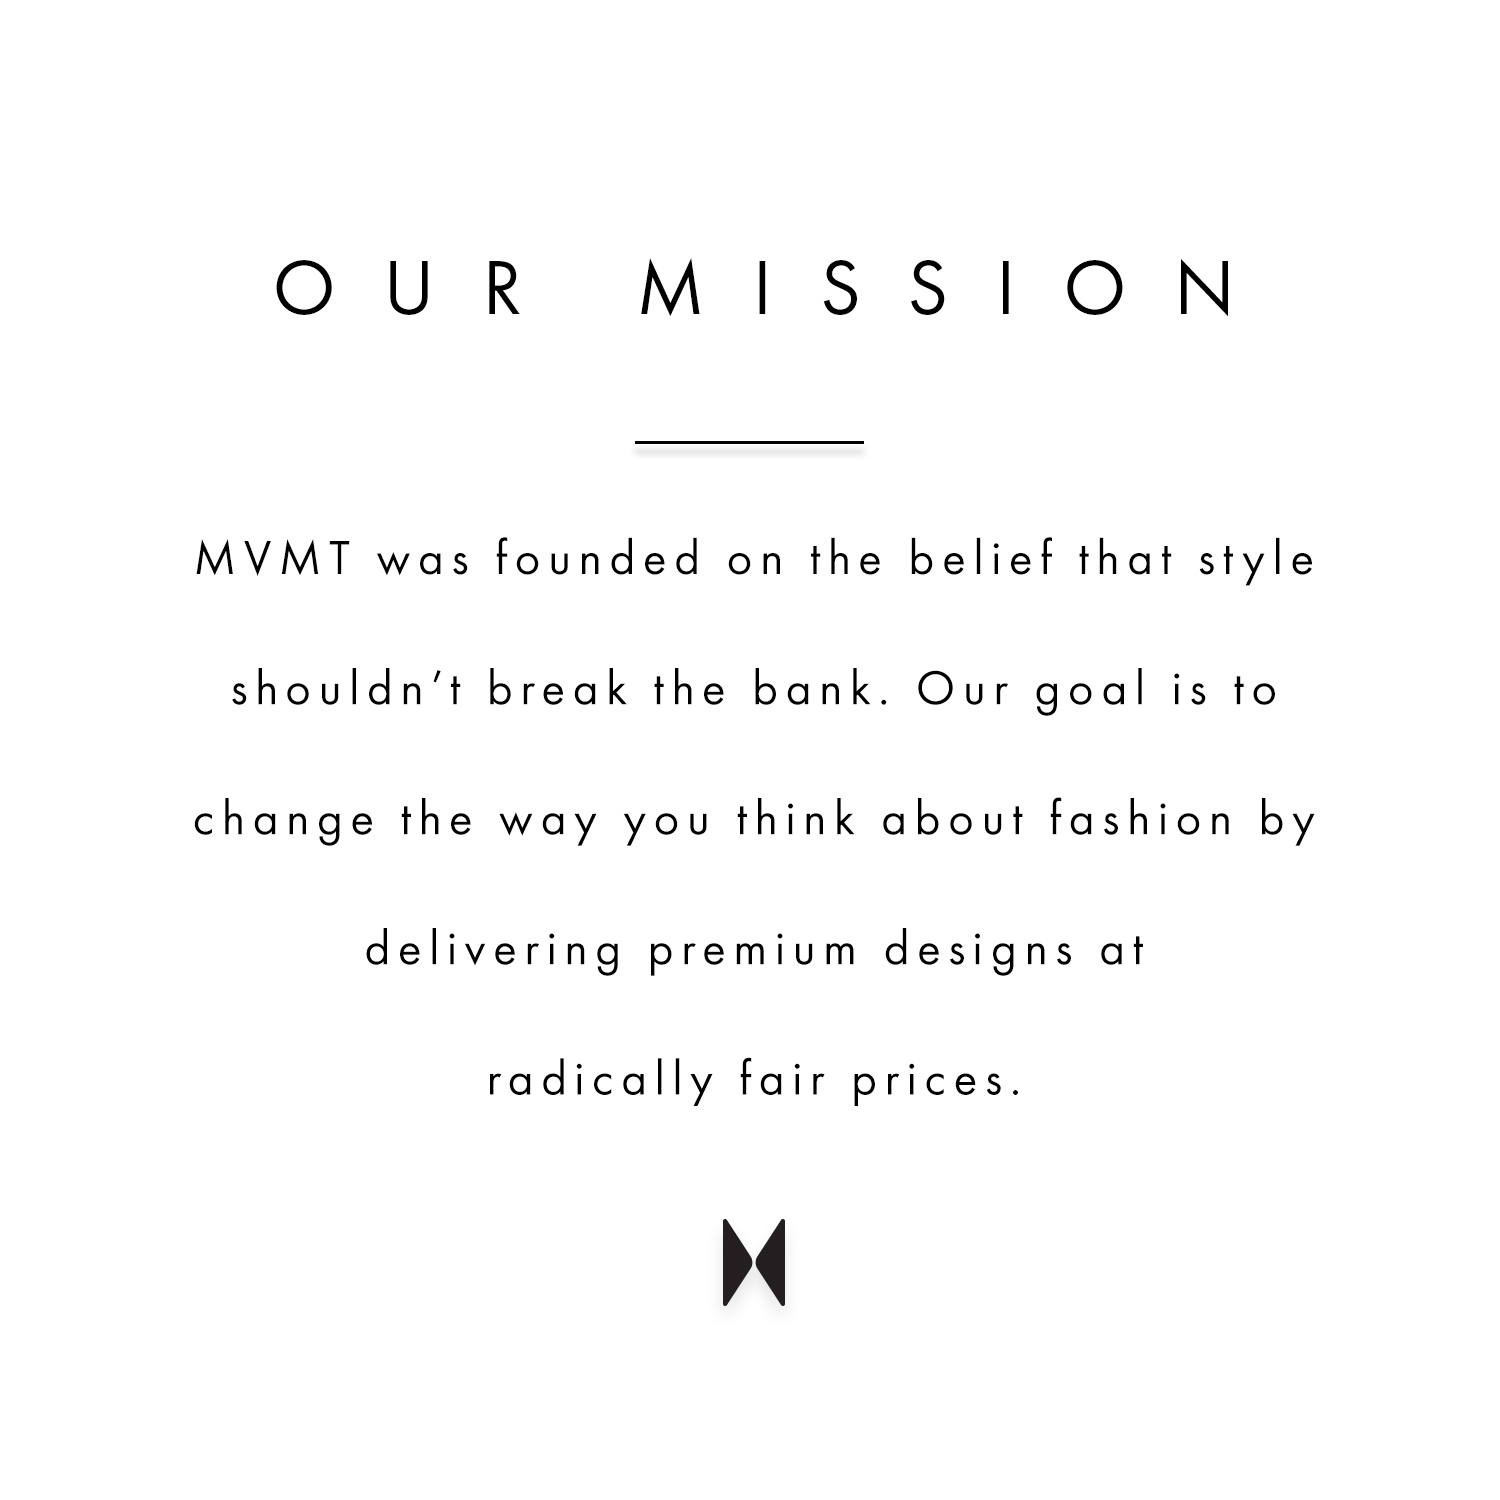 Our mission. MVMT was founded on the belief that style shouldn't break the bank. Our goal is to change the way you think about fashion by delivering premium designs at radically fair prices.